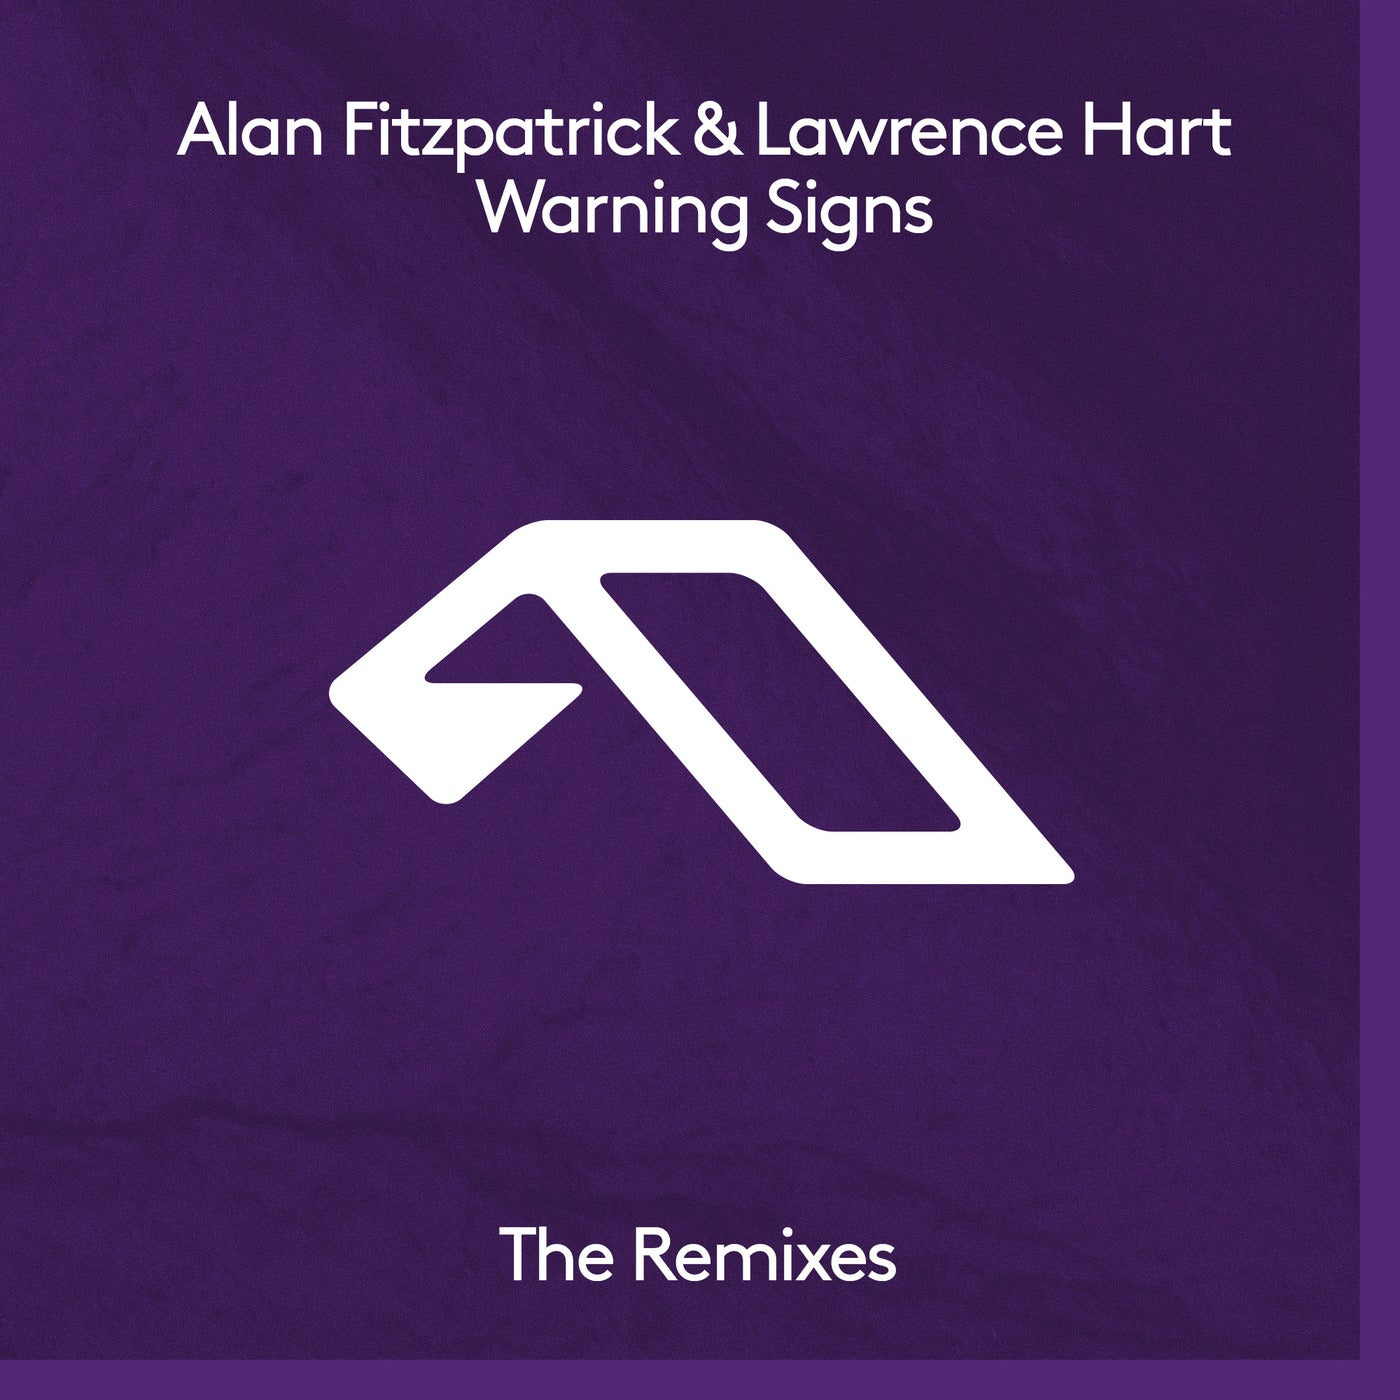 Download Warning Signs (The Remixes) on Electrobuzz